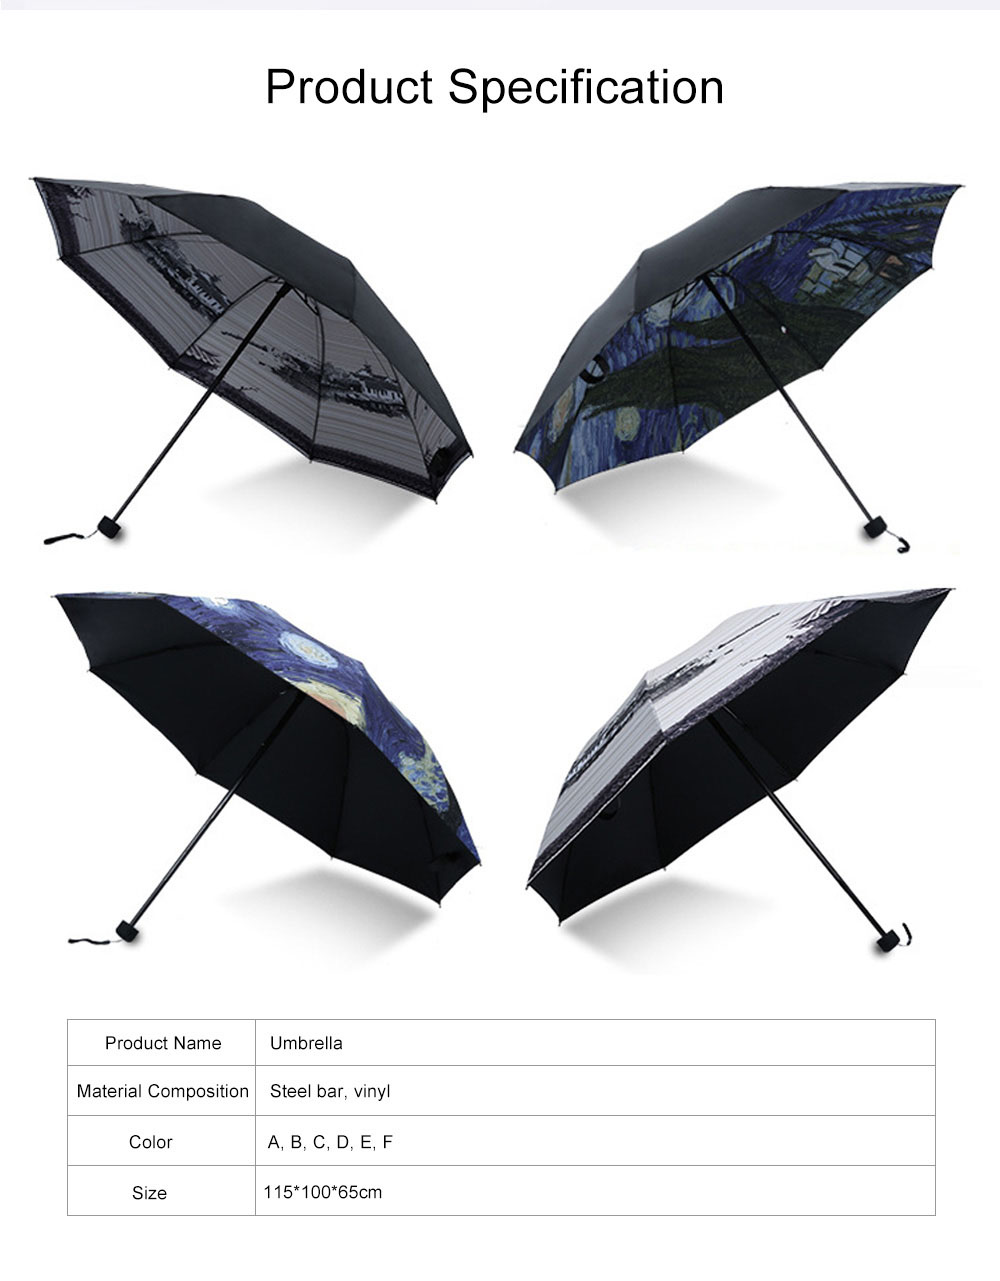 Lady's Multifunctional Outdoor Sun Umbrella with Triple Fold Sun Block of Van Gogh Painting Design 9